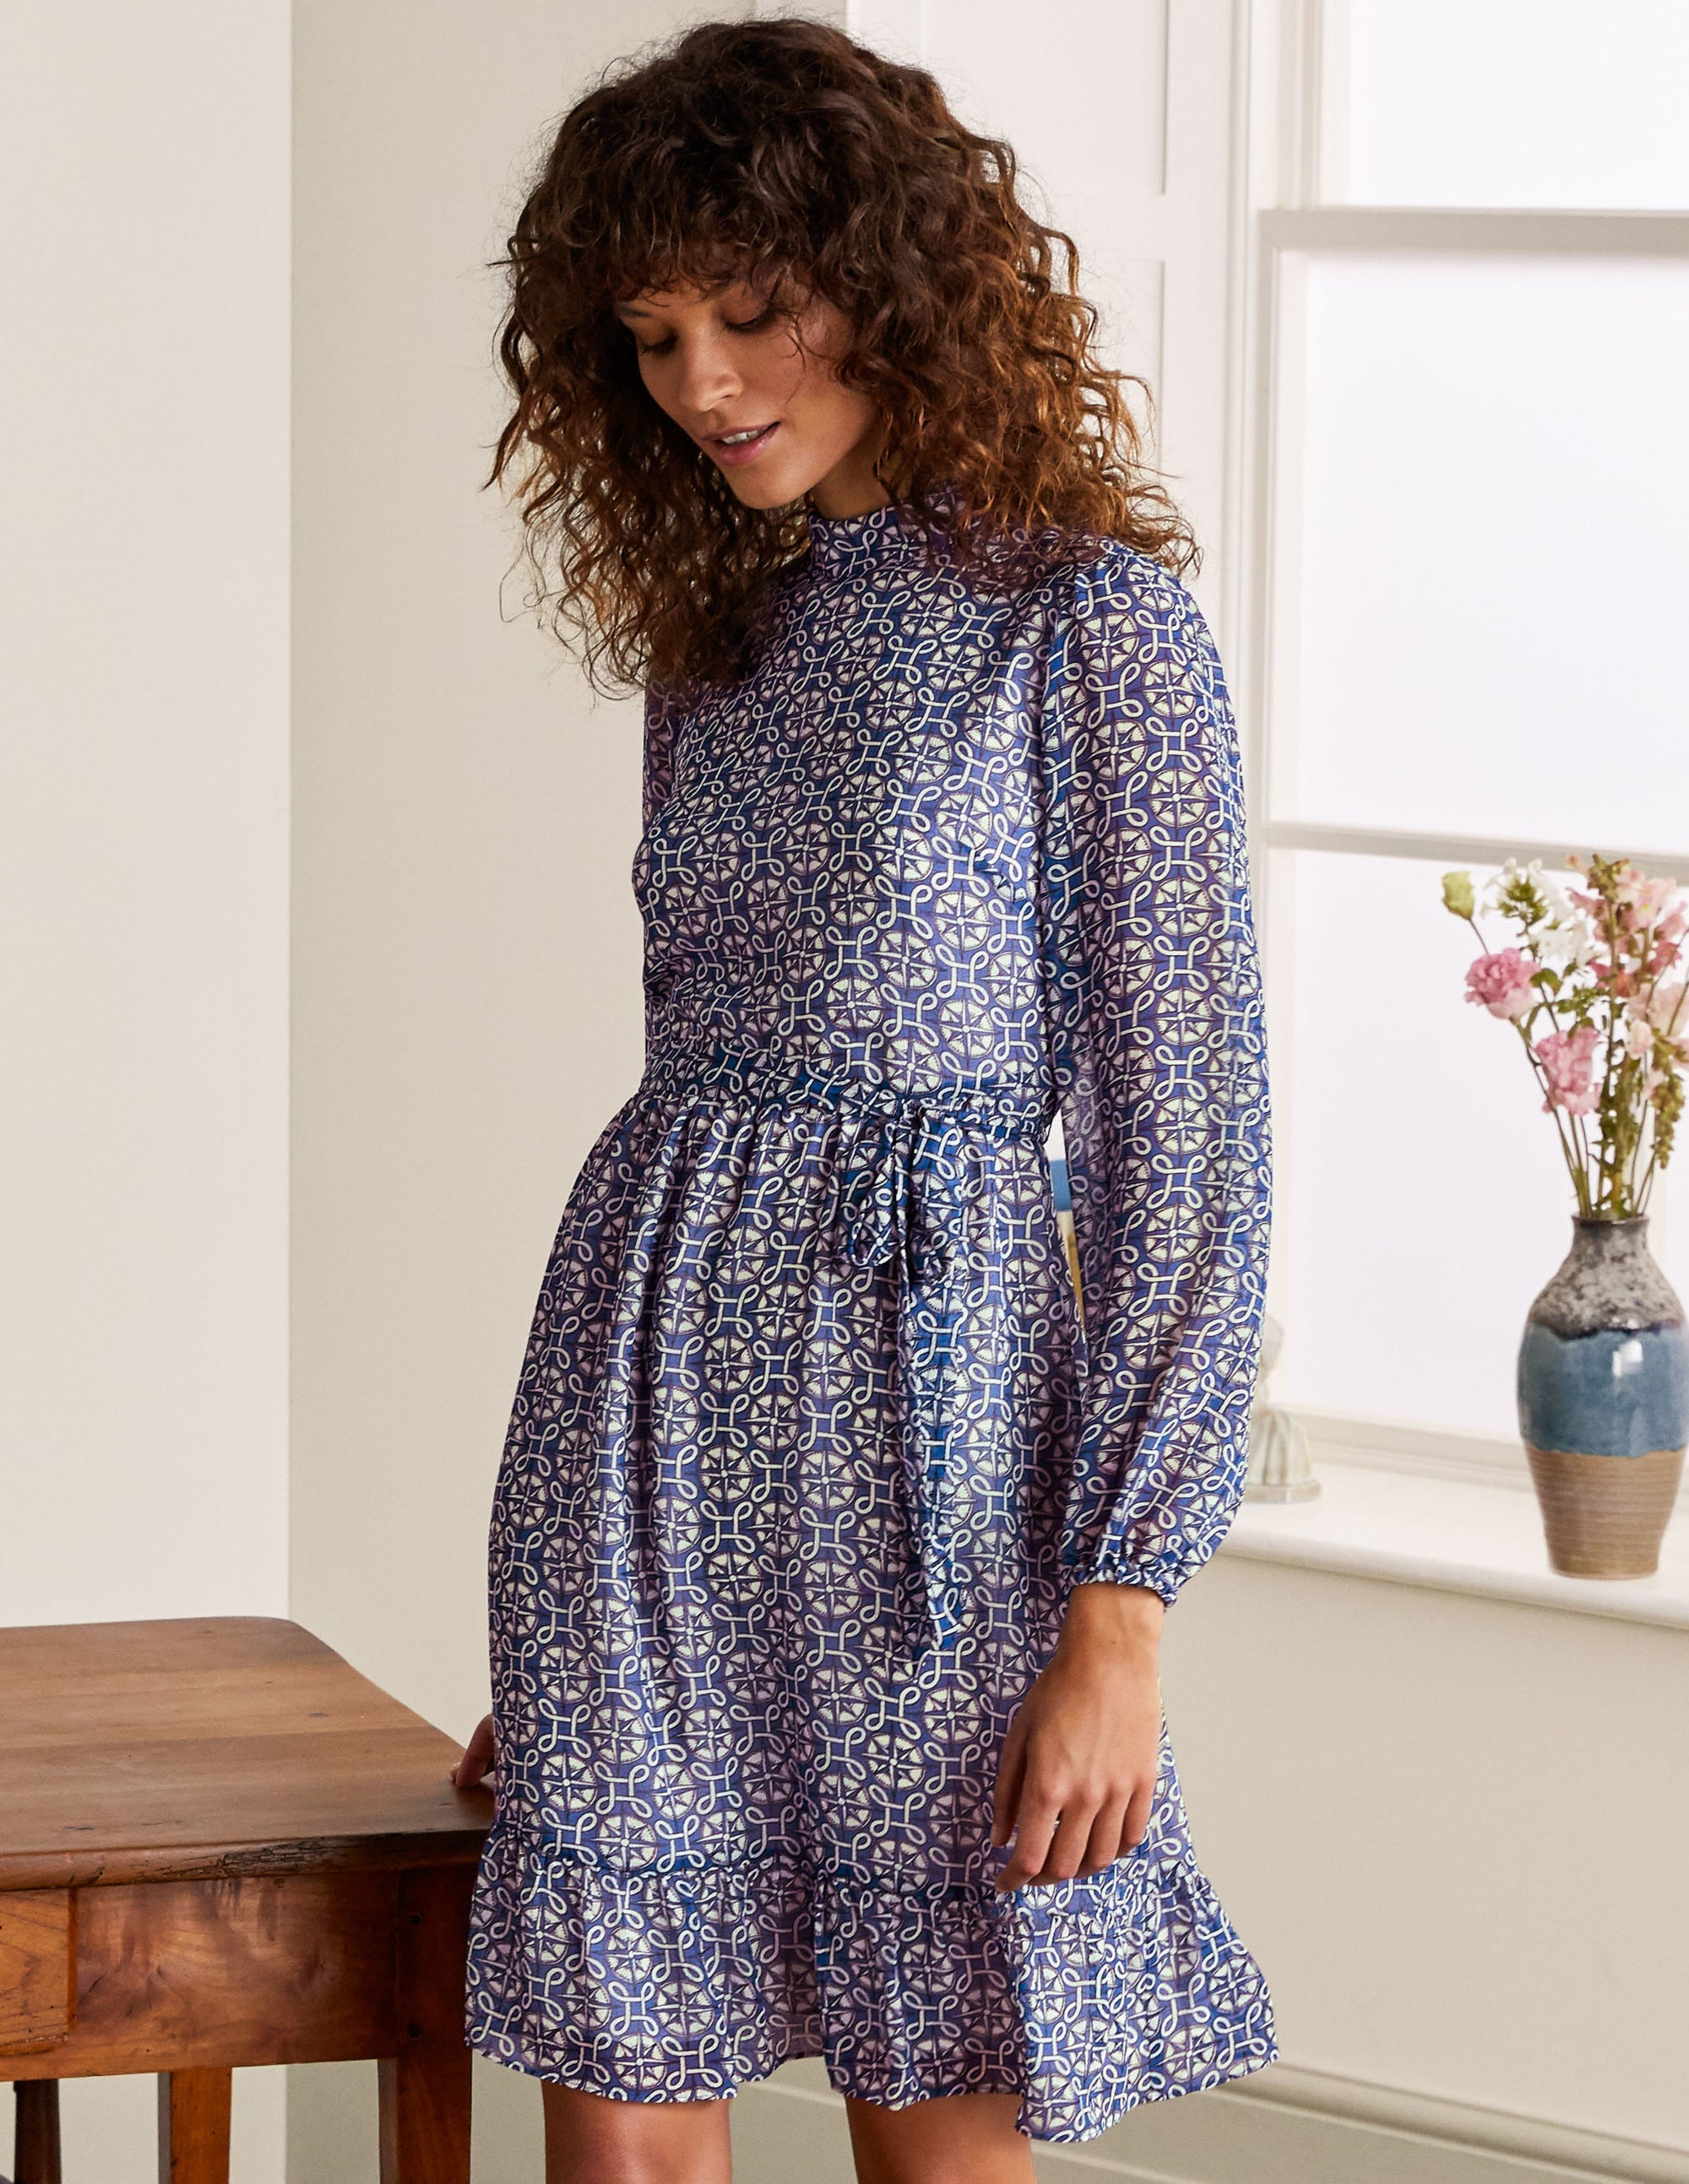 Boden Lottie Belted Dress - Summit, Compass Knot